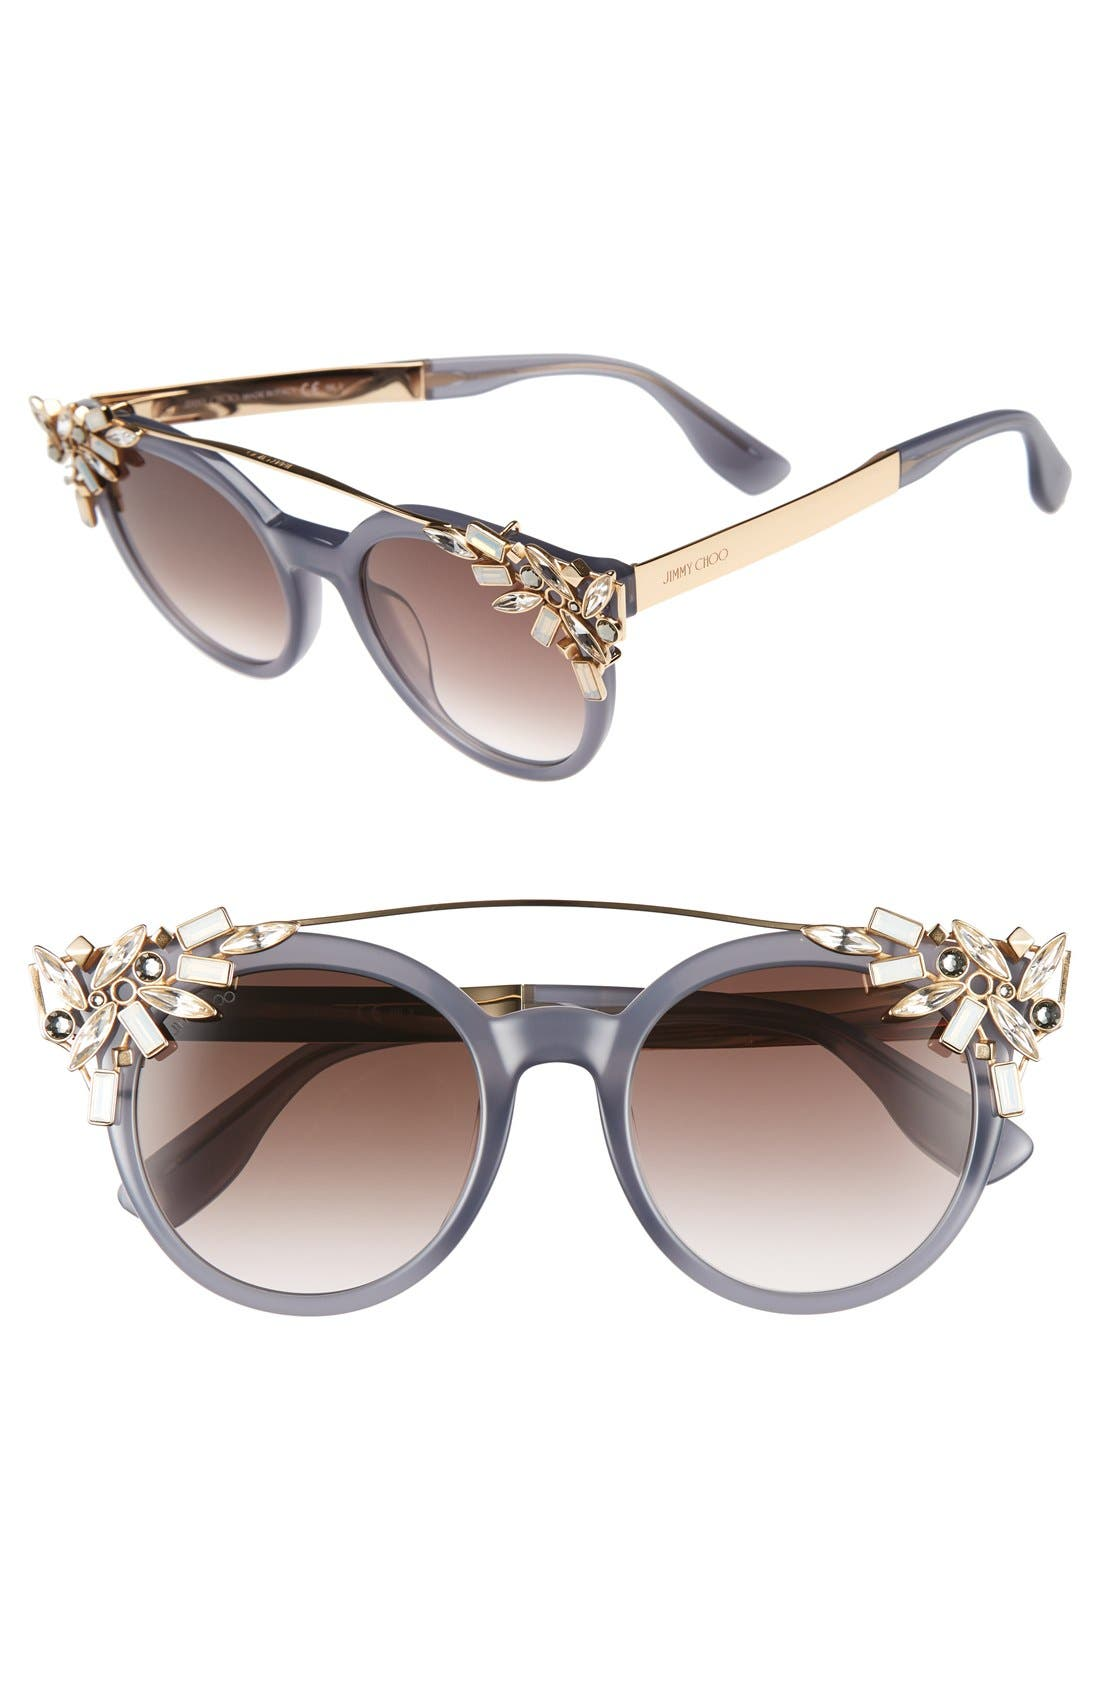 Main Image - Jimmy Choo 'Vivy' 51mm Sunglasses